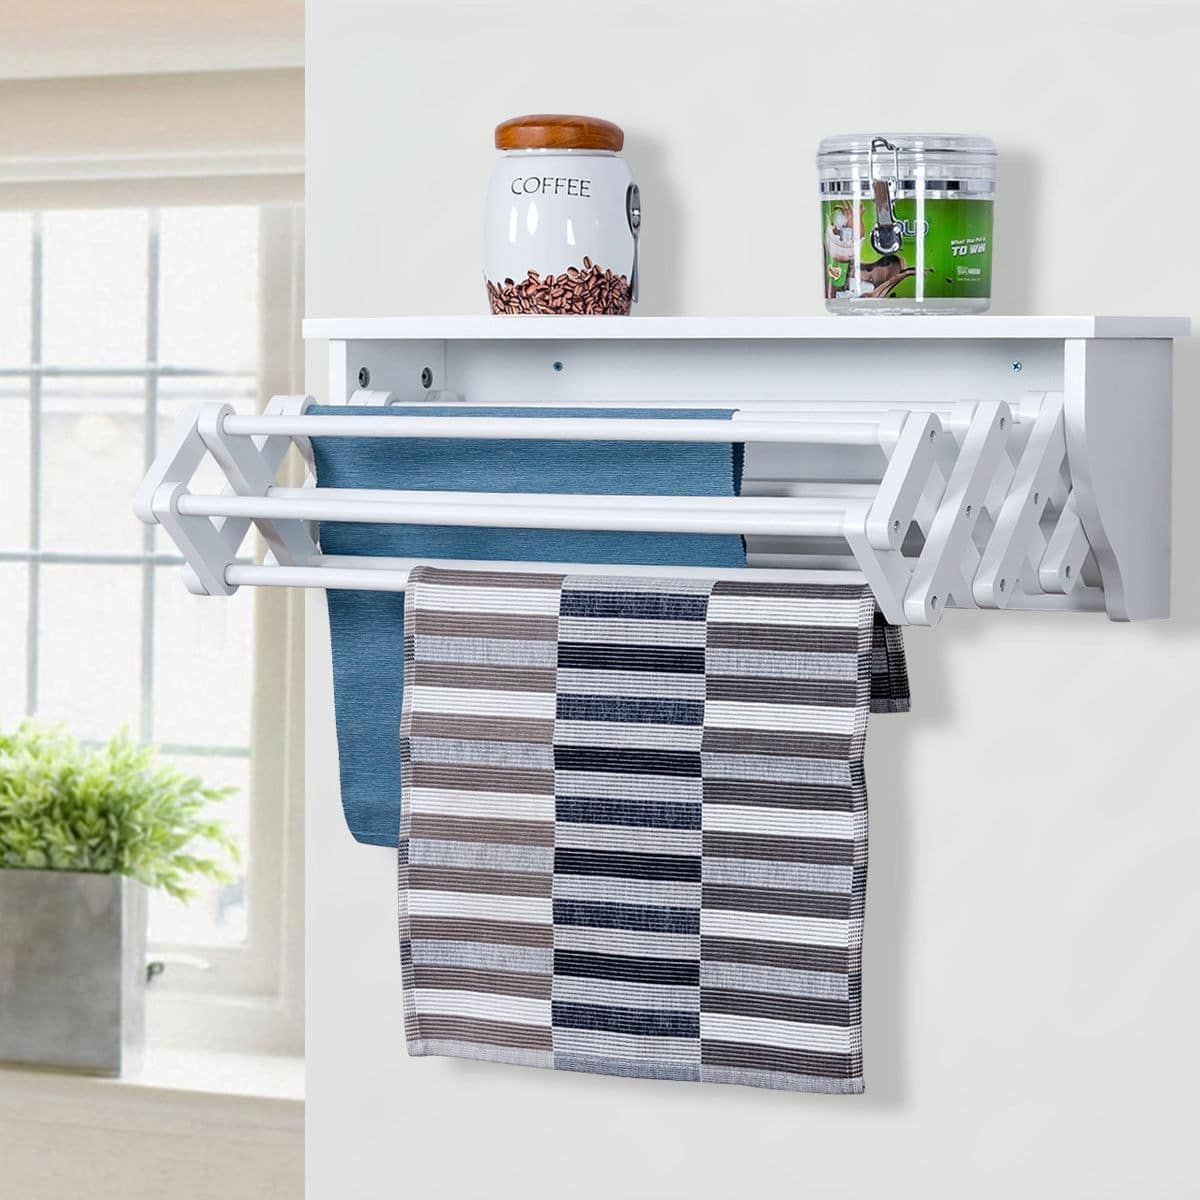 Costway wallmounted drying rack folding clothes towel laundry room